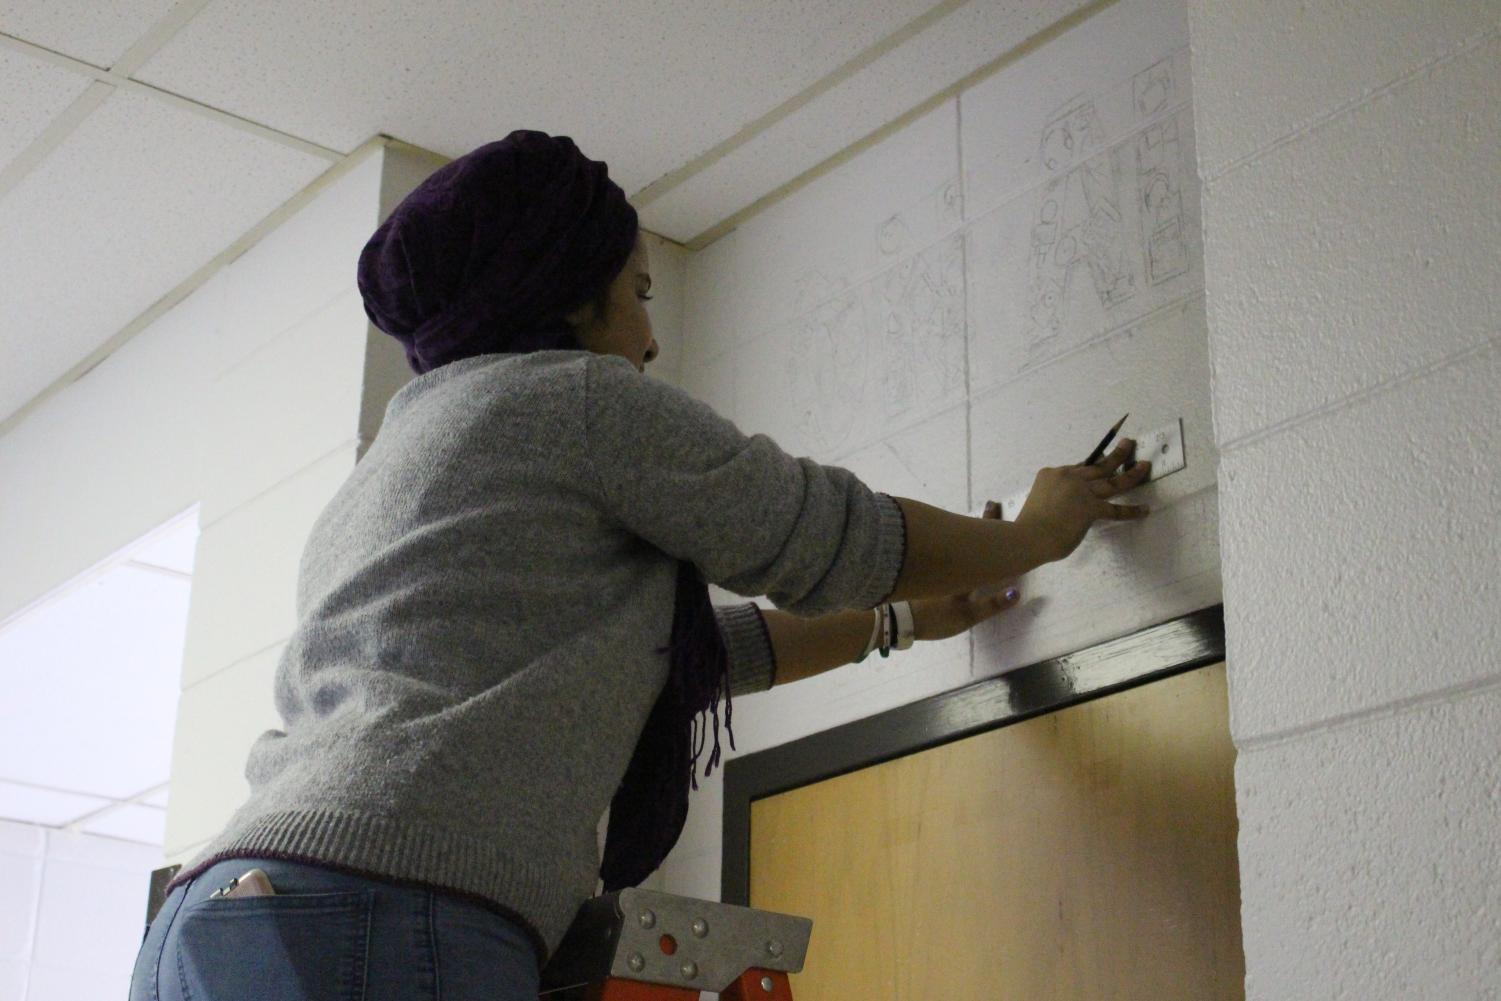 Senior%2C+Madiha+Maqsood%2C+spent+her+service+time+working+on+a+mural+above+the+broadcasting+studio.